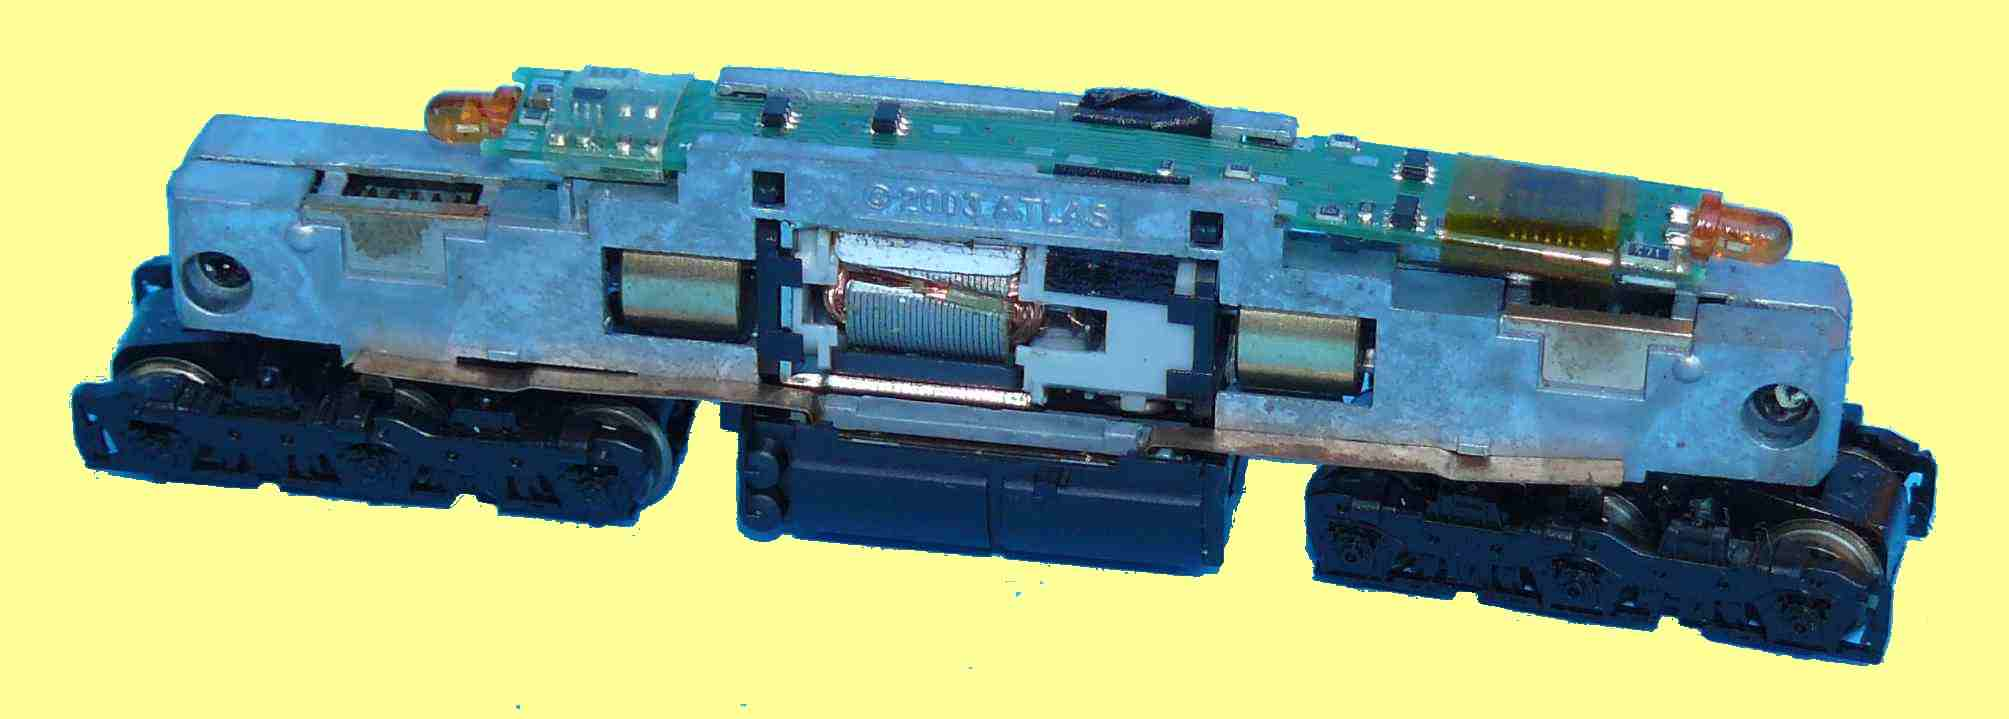 Atlas SD7 - bogies rotated plus DCC decoder